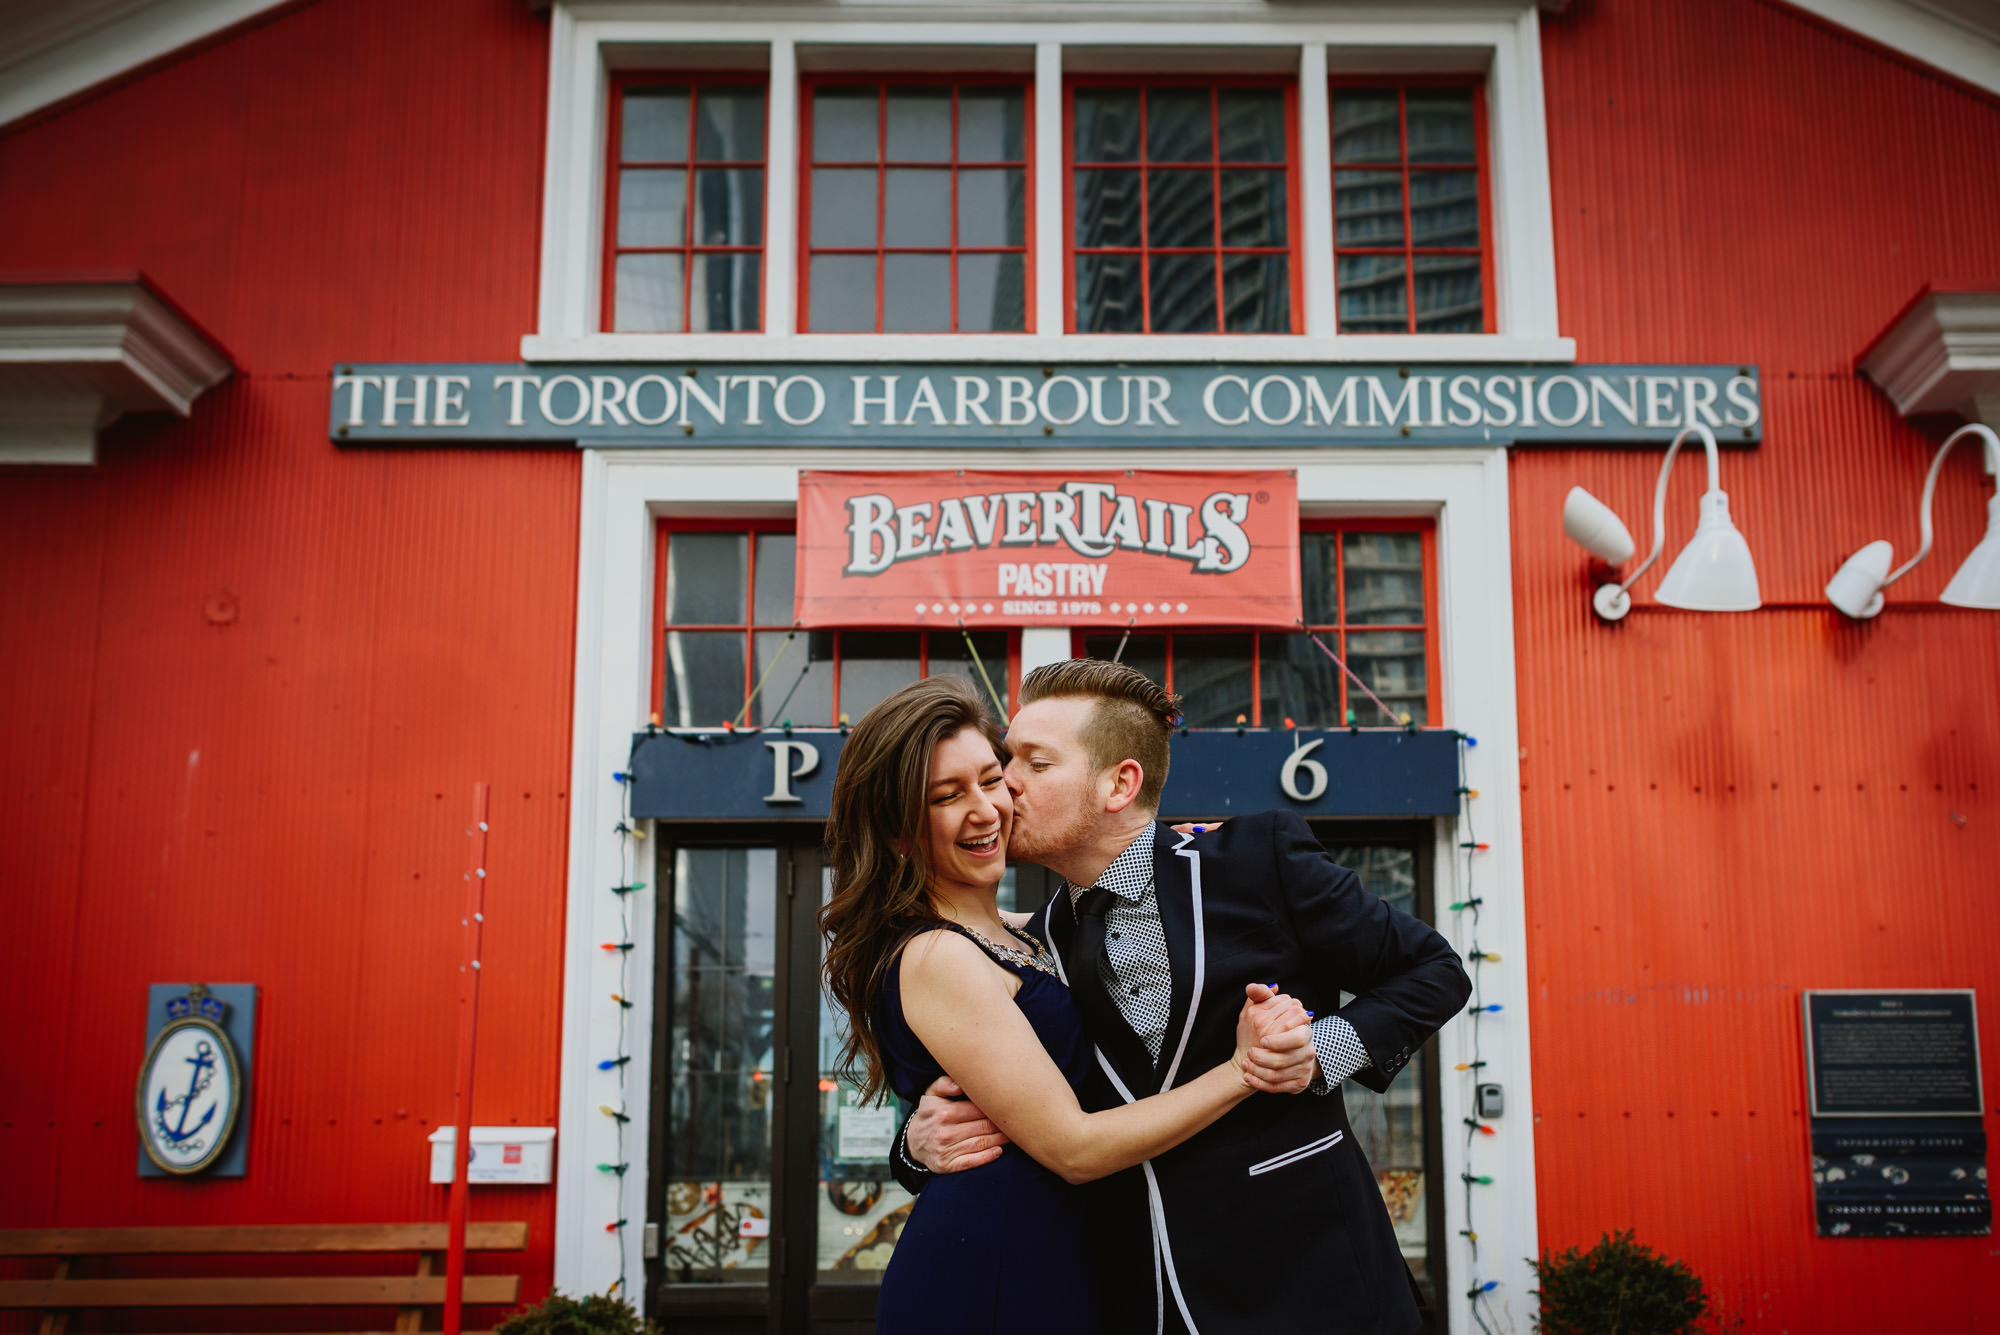 Man kissing woman during fun and energetic harbourfront engagement session in Toronto